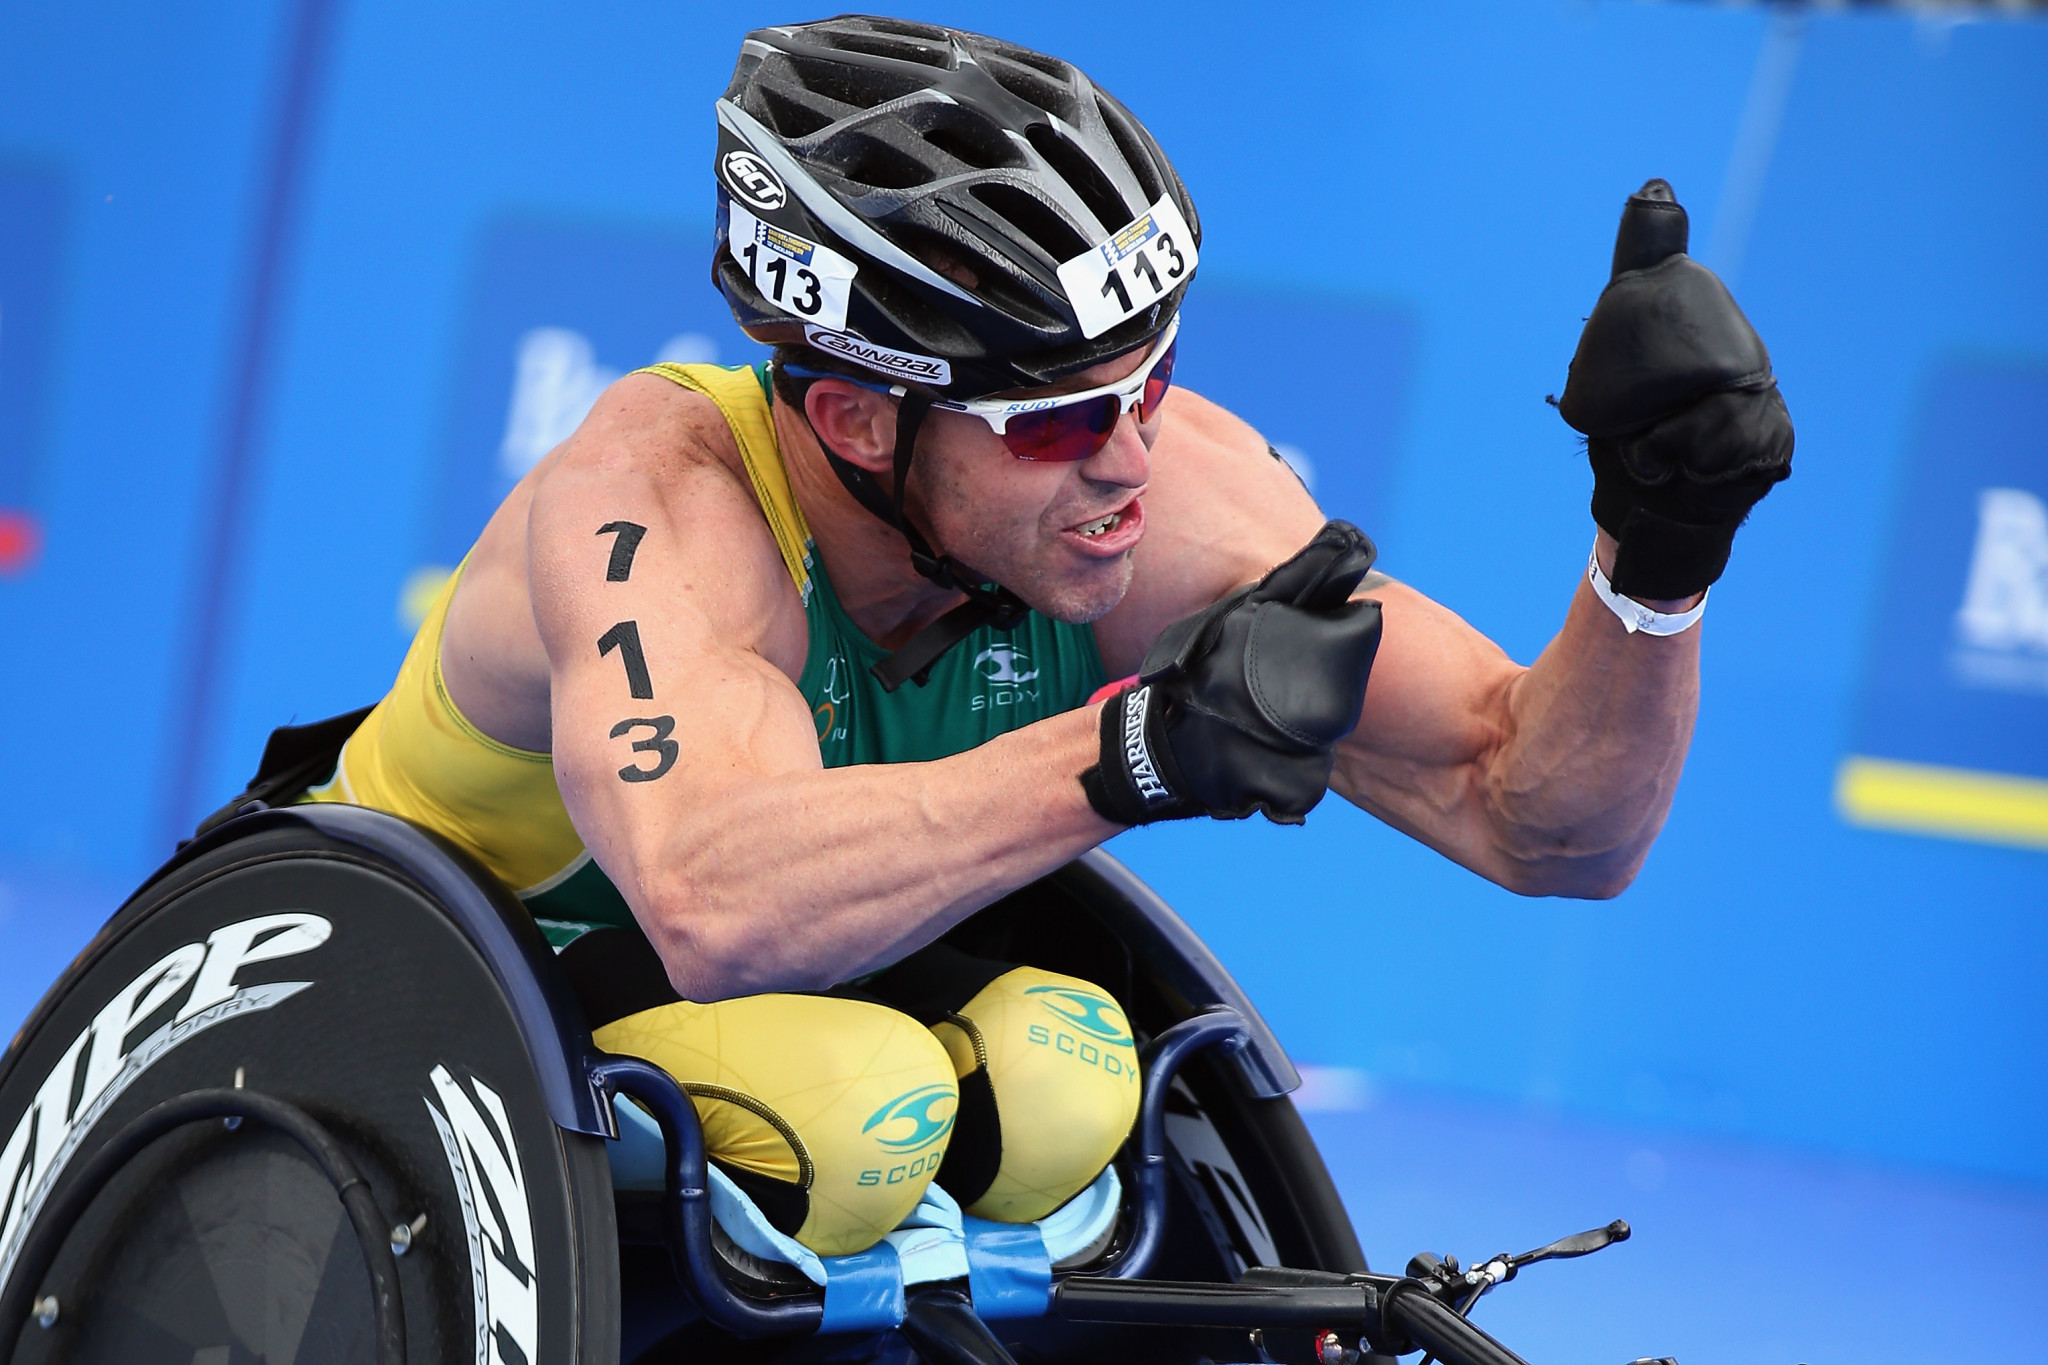 Australia unveil Paratriathlon team for Gold Coast 2018